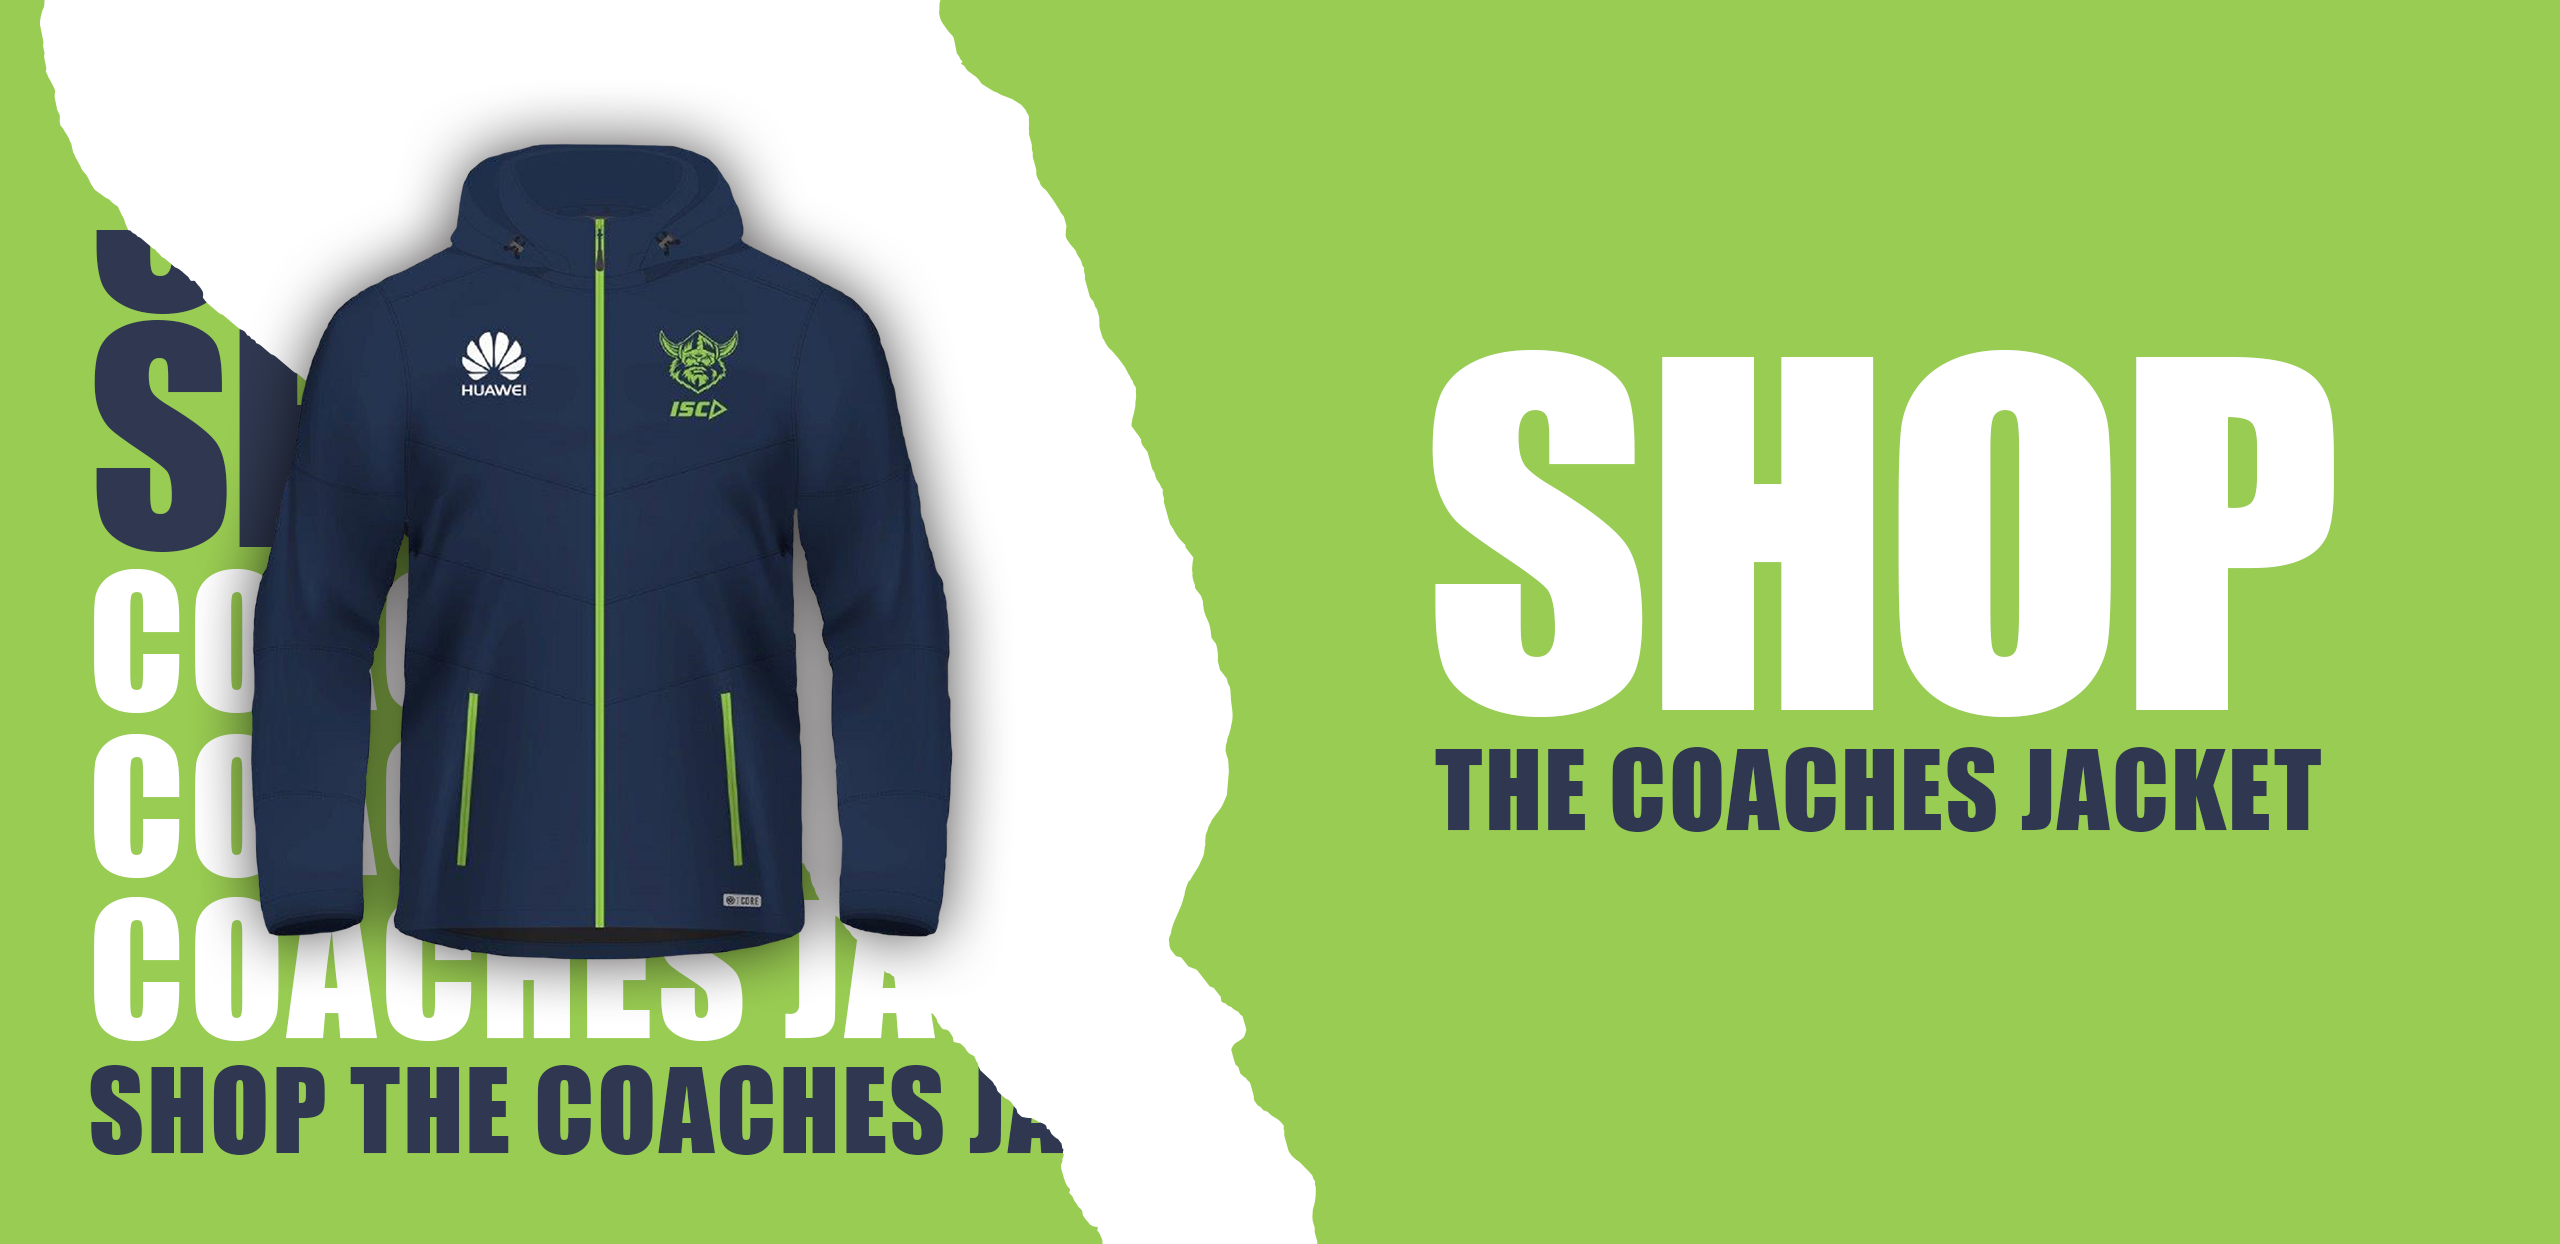 https://www.raidersshop.com.au/2018-adults-coaches-jacket-1670.phtml